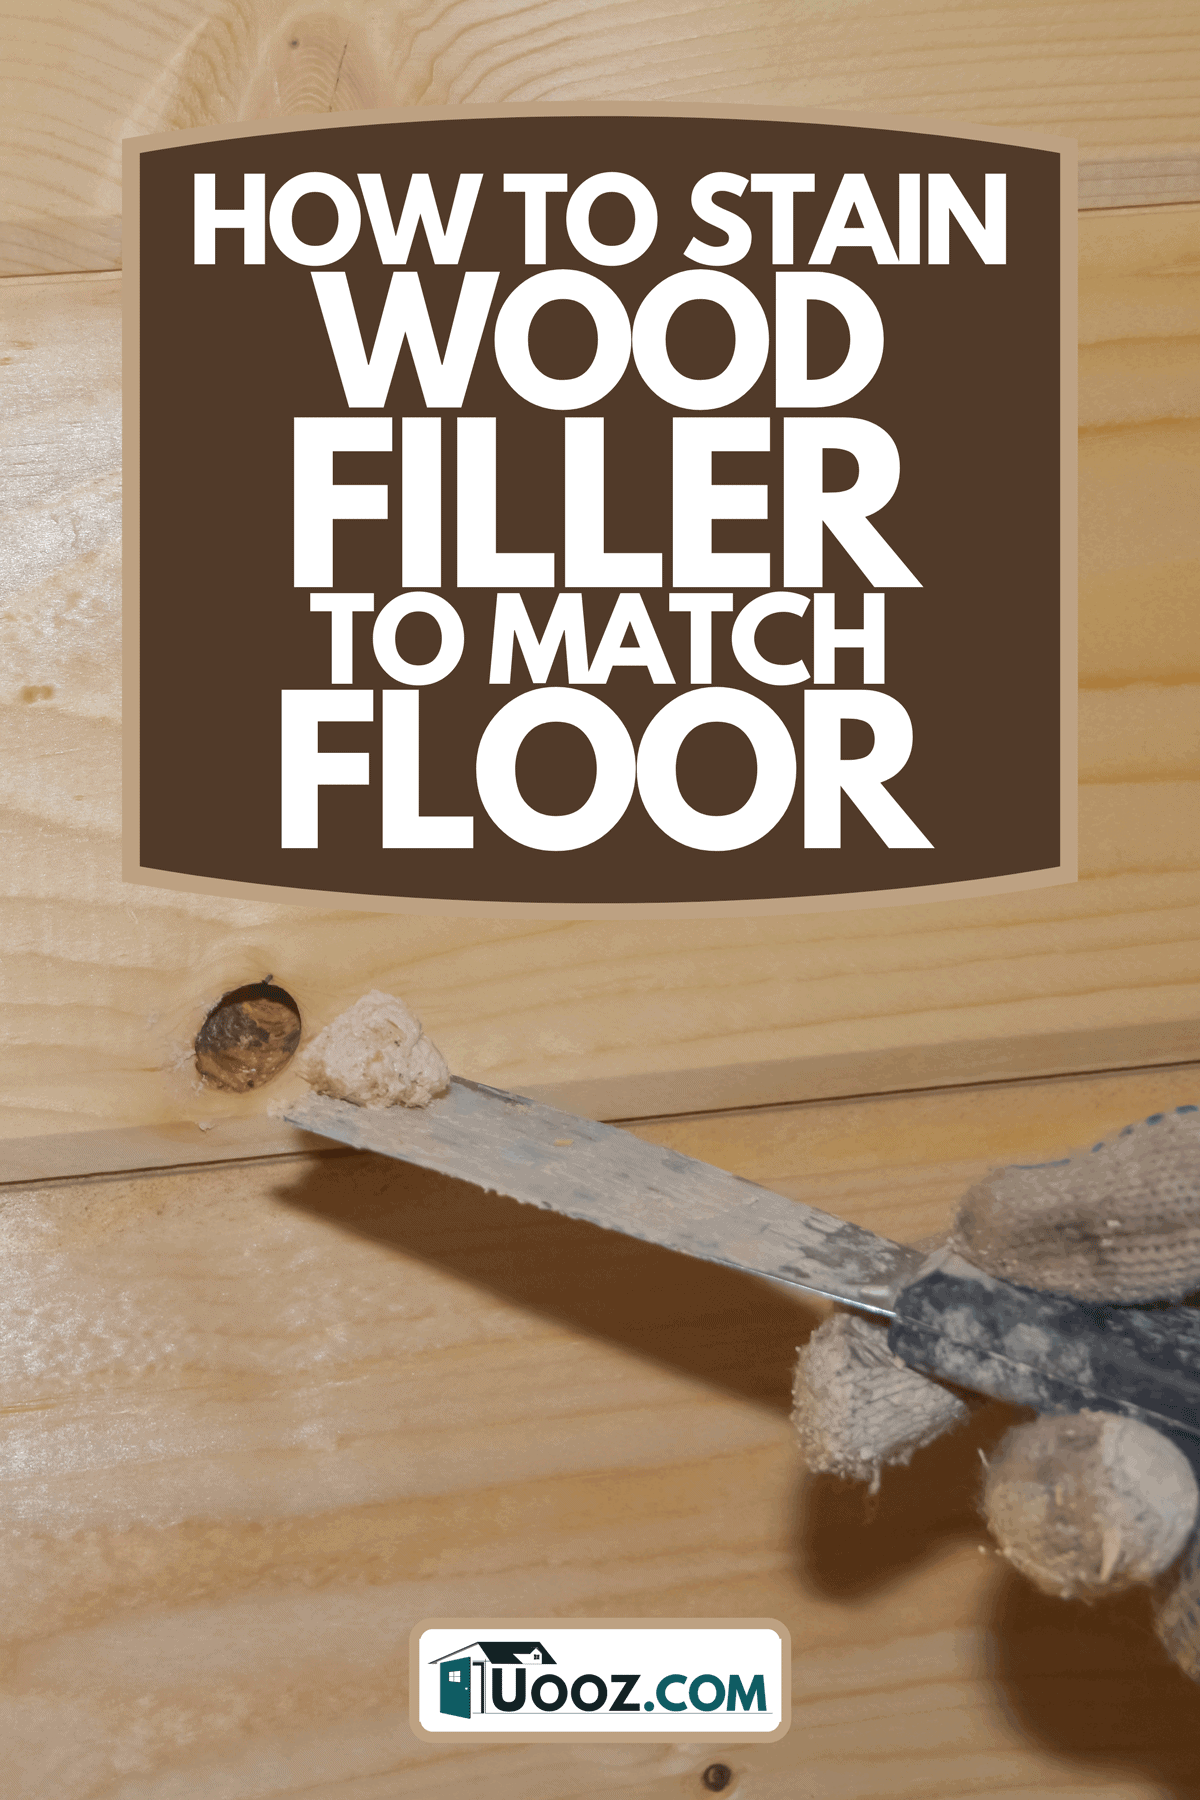 A worker puts putty on a hole in a wooden wall, How To Stain Wood Filler To Match Floor